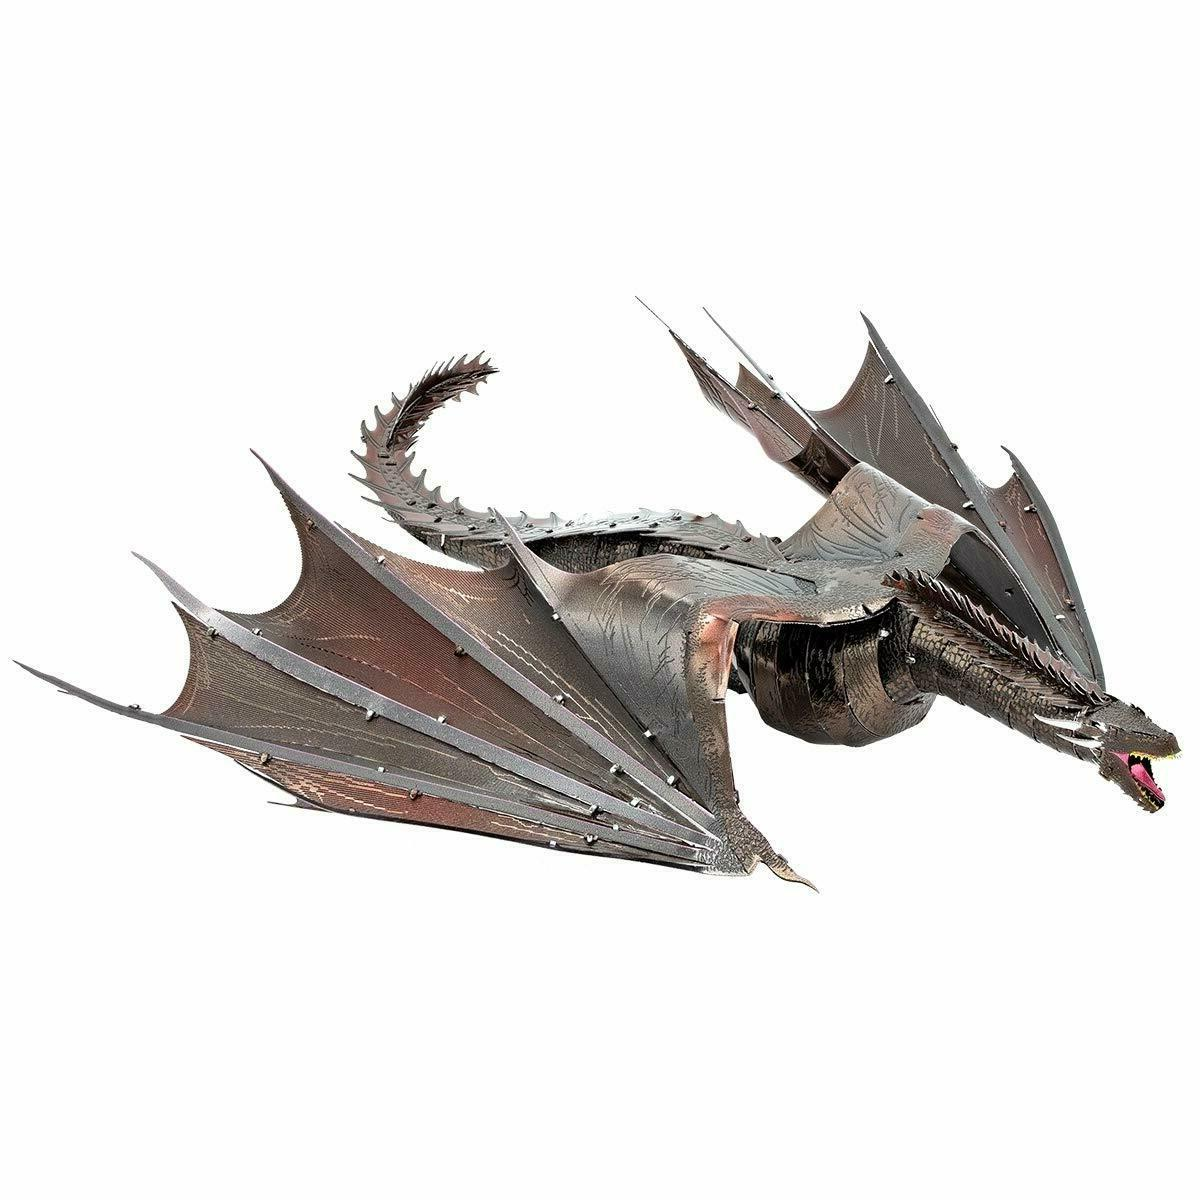 iconx game of thrones drogon 3d steel